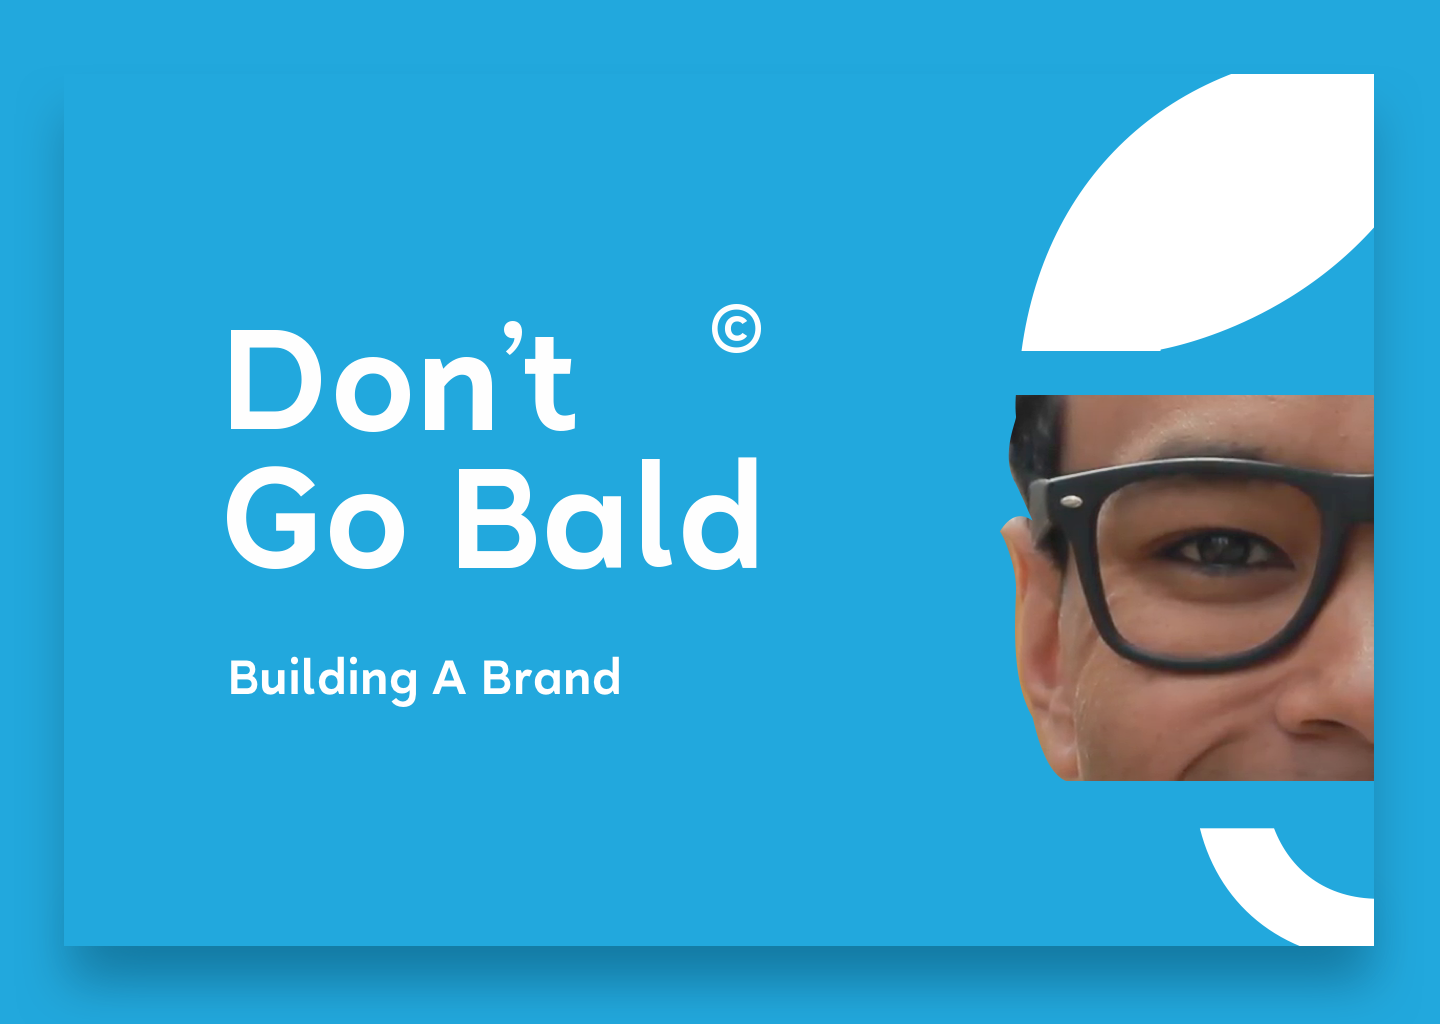 Brand Guidelines & Brand Identity for Don't Go Bald